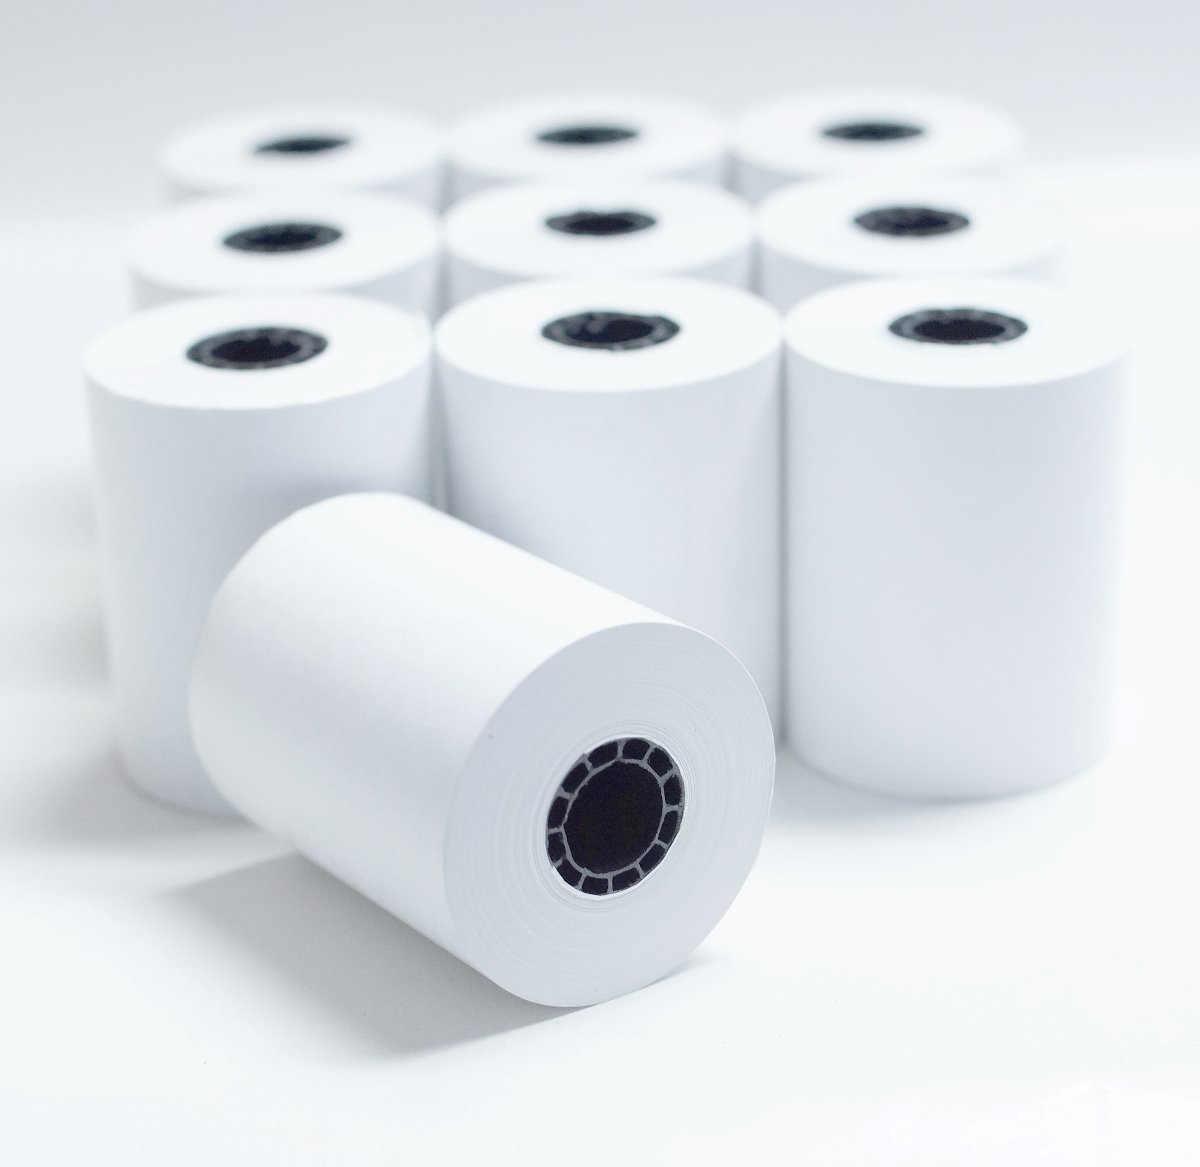 2 1/4'' x 85' White Thermal Paper Credit Card & Cash Register Tape - Pack of 10 Rolls by Body-N-Home